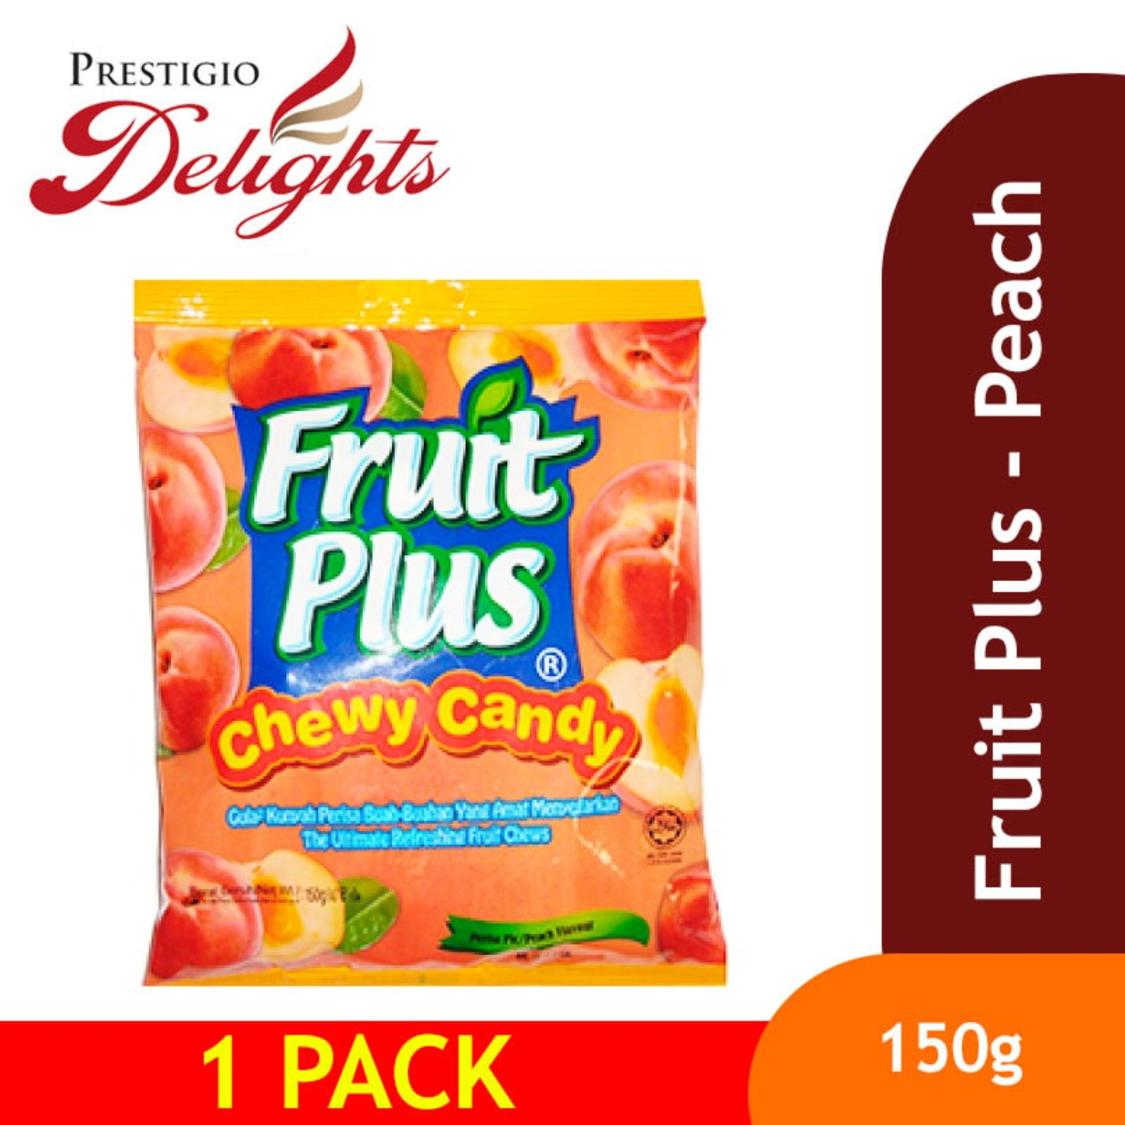 Fruit Plus - Peach By Prestigio Delights.